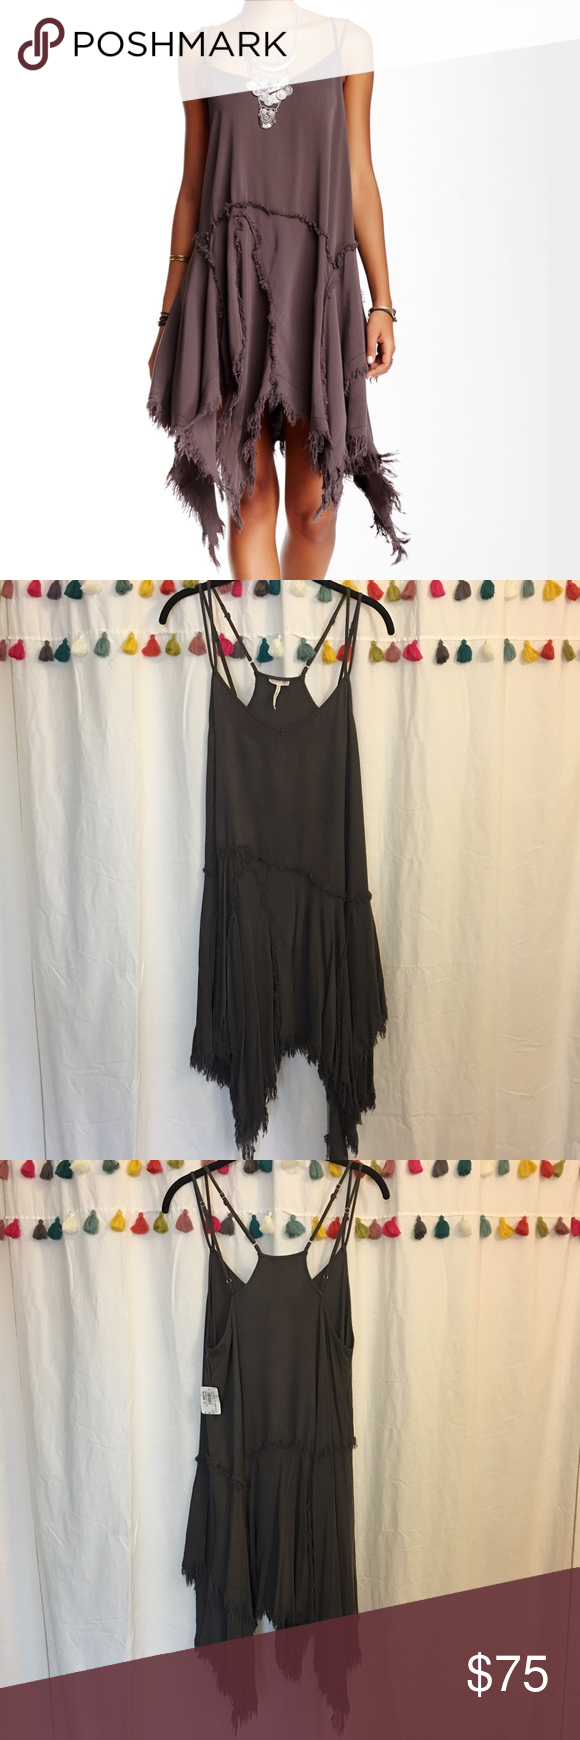 Free People | Tattered up shred slip This slip dress is perfect to wear all year round - from the beach to the mountains (with a chunky sweater)! It's never been worn, and still has tags attached. I bought it at a shop in Manhattan Beach, CA. Free People Dresses